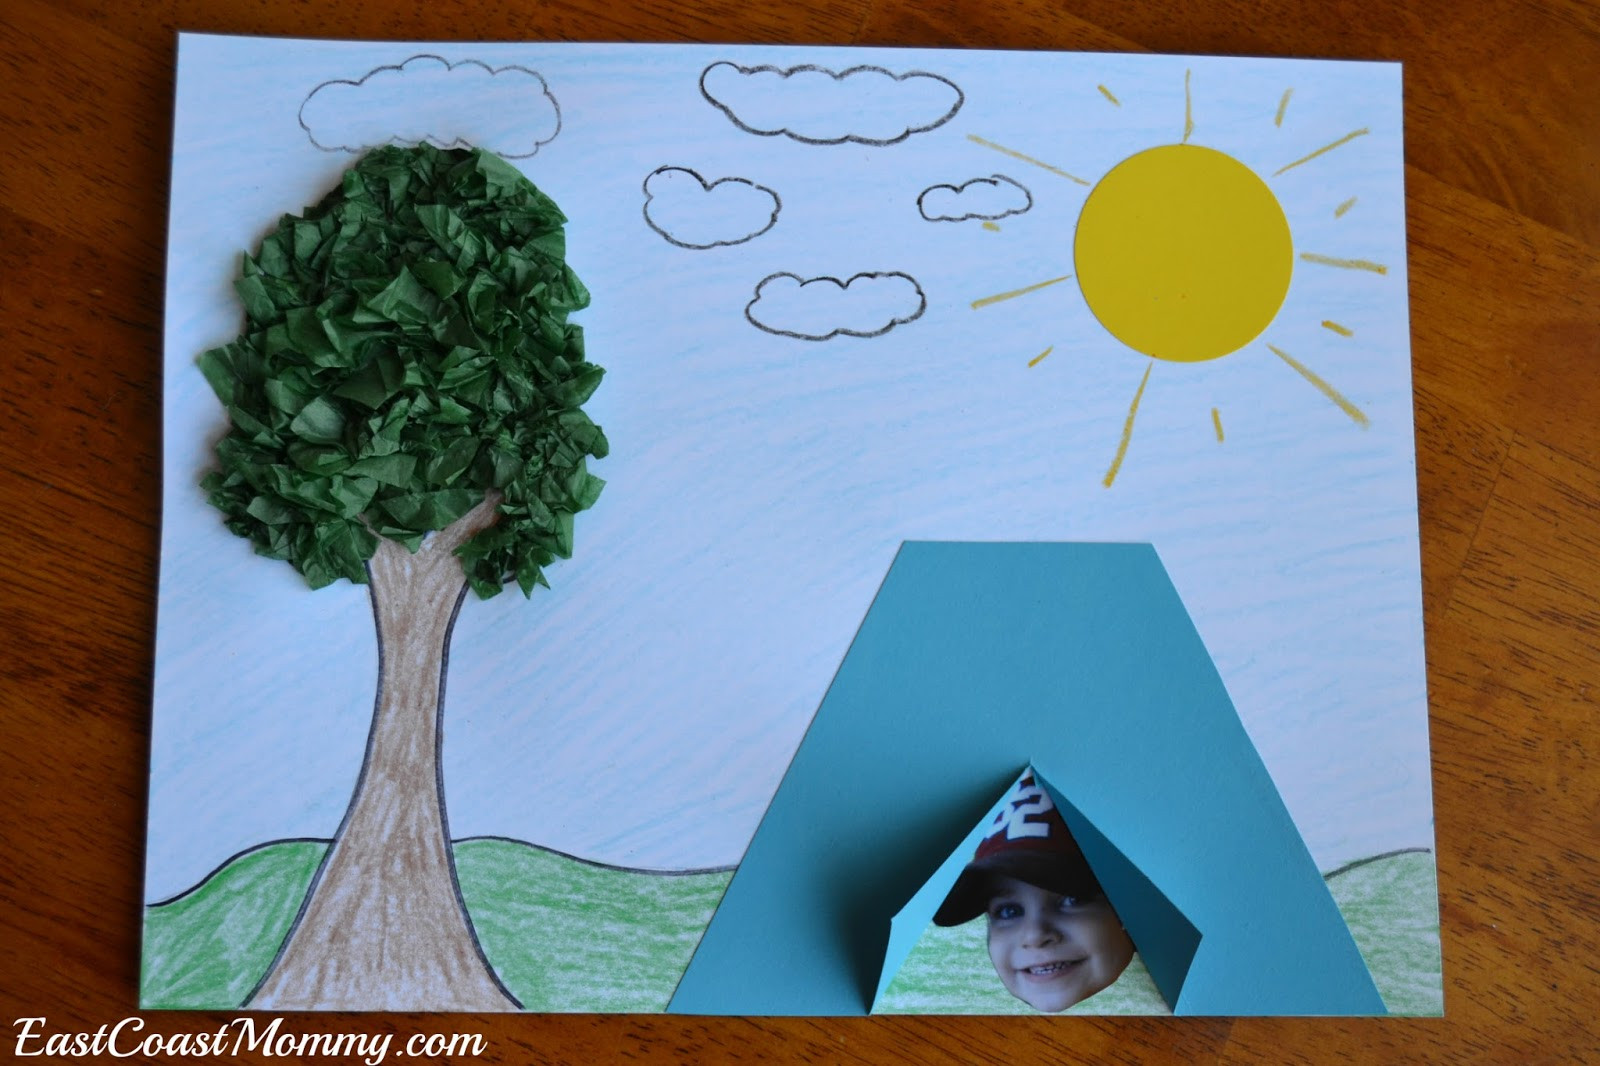 Camping Crafts For Preschoolers  East Coast Mommy Camping Crafts and Activities